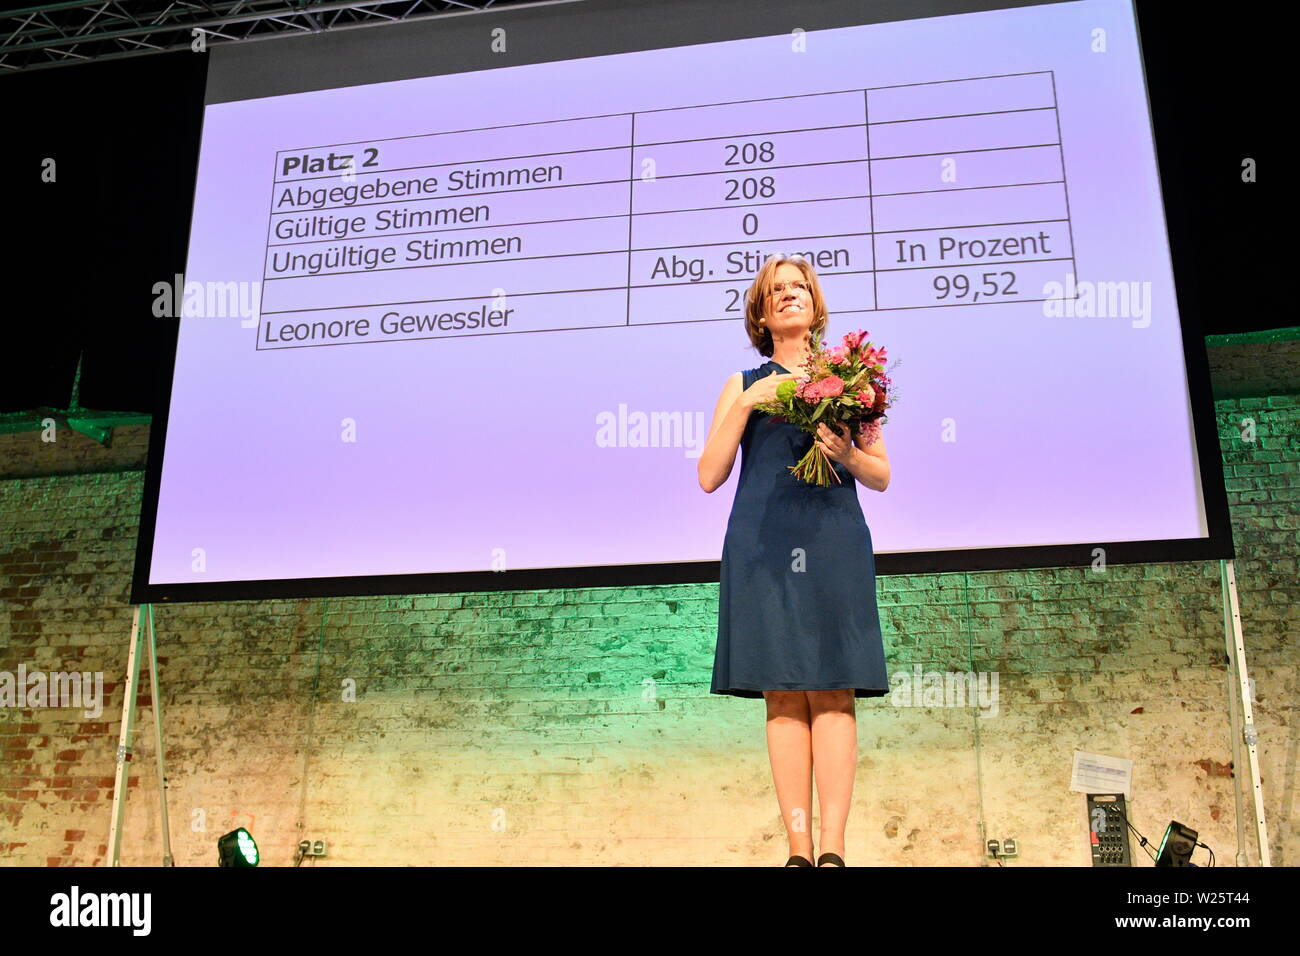 """Vienna, Austria. 06th July, 2019. 41st Federal Congress of the Greens(GRUENE). The list places 1 to 14 of the list of candidates for the National Council election 2019 are selected in the """"Expedithalle Wien"""". Leonore Gewessler was elected with 99, 52% of the vote. Credit: Franz Perc / Alamy Live News Stock Photo"""